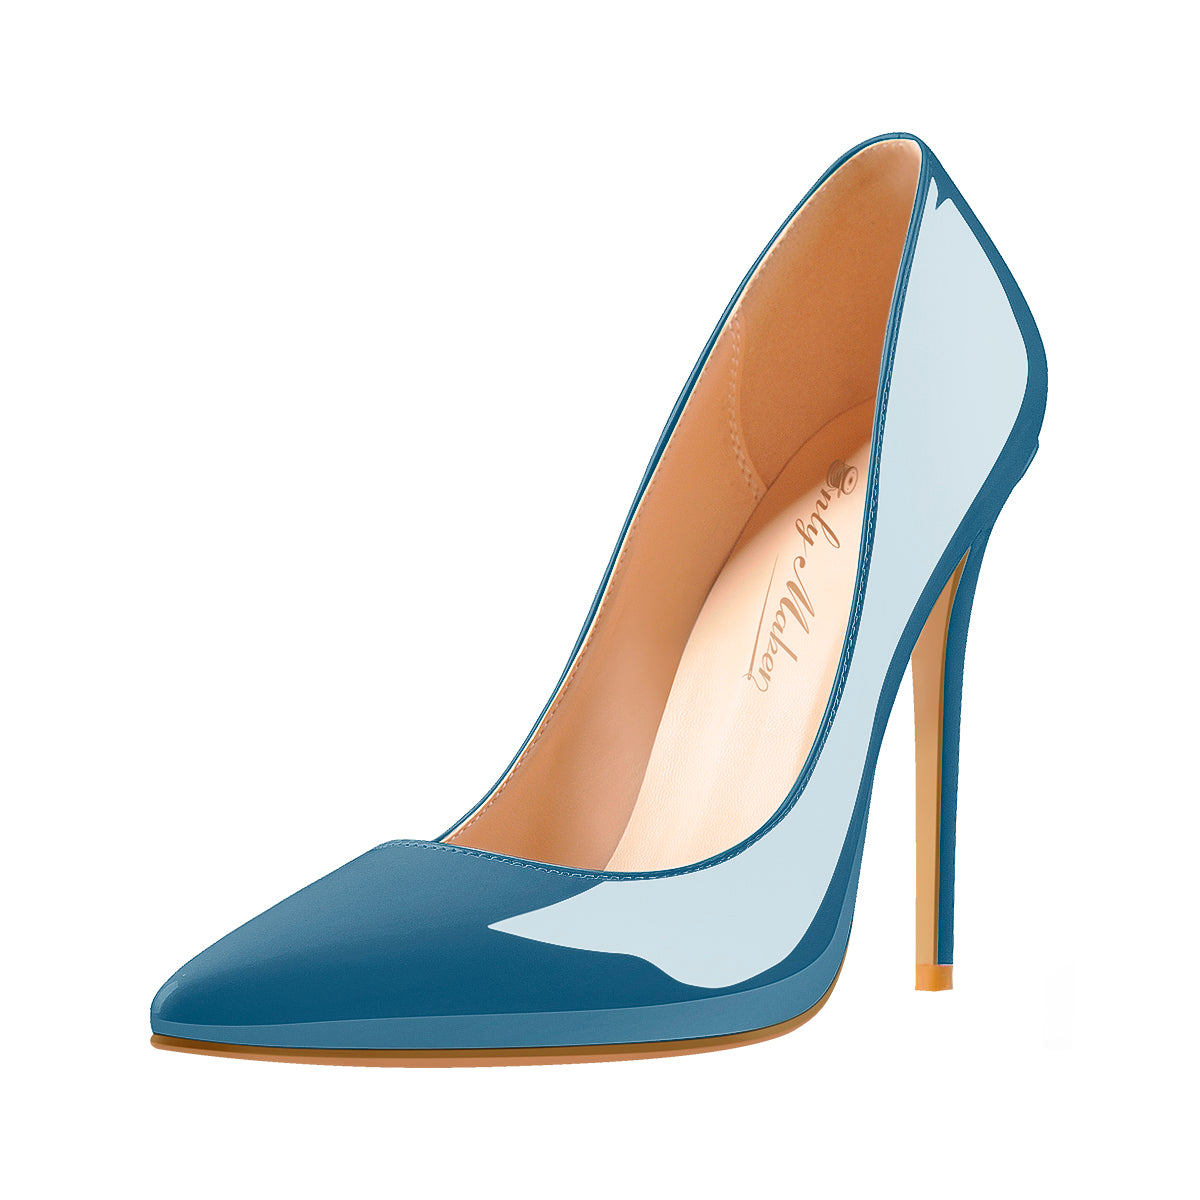 Blue Patent Leather Pointed Toe High Heel Pumps